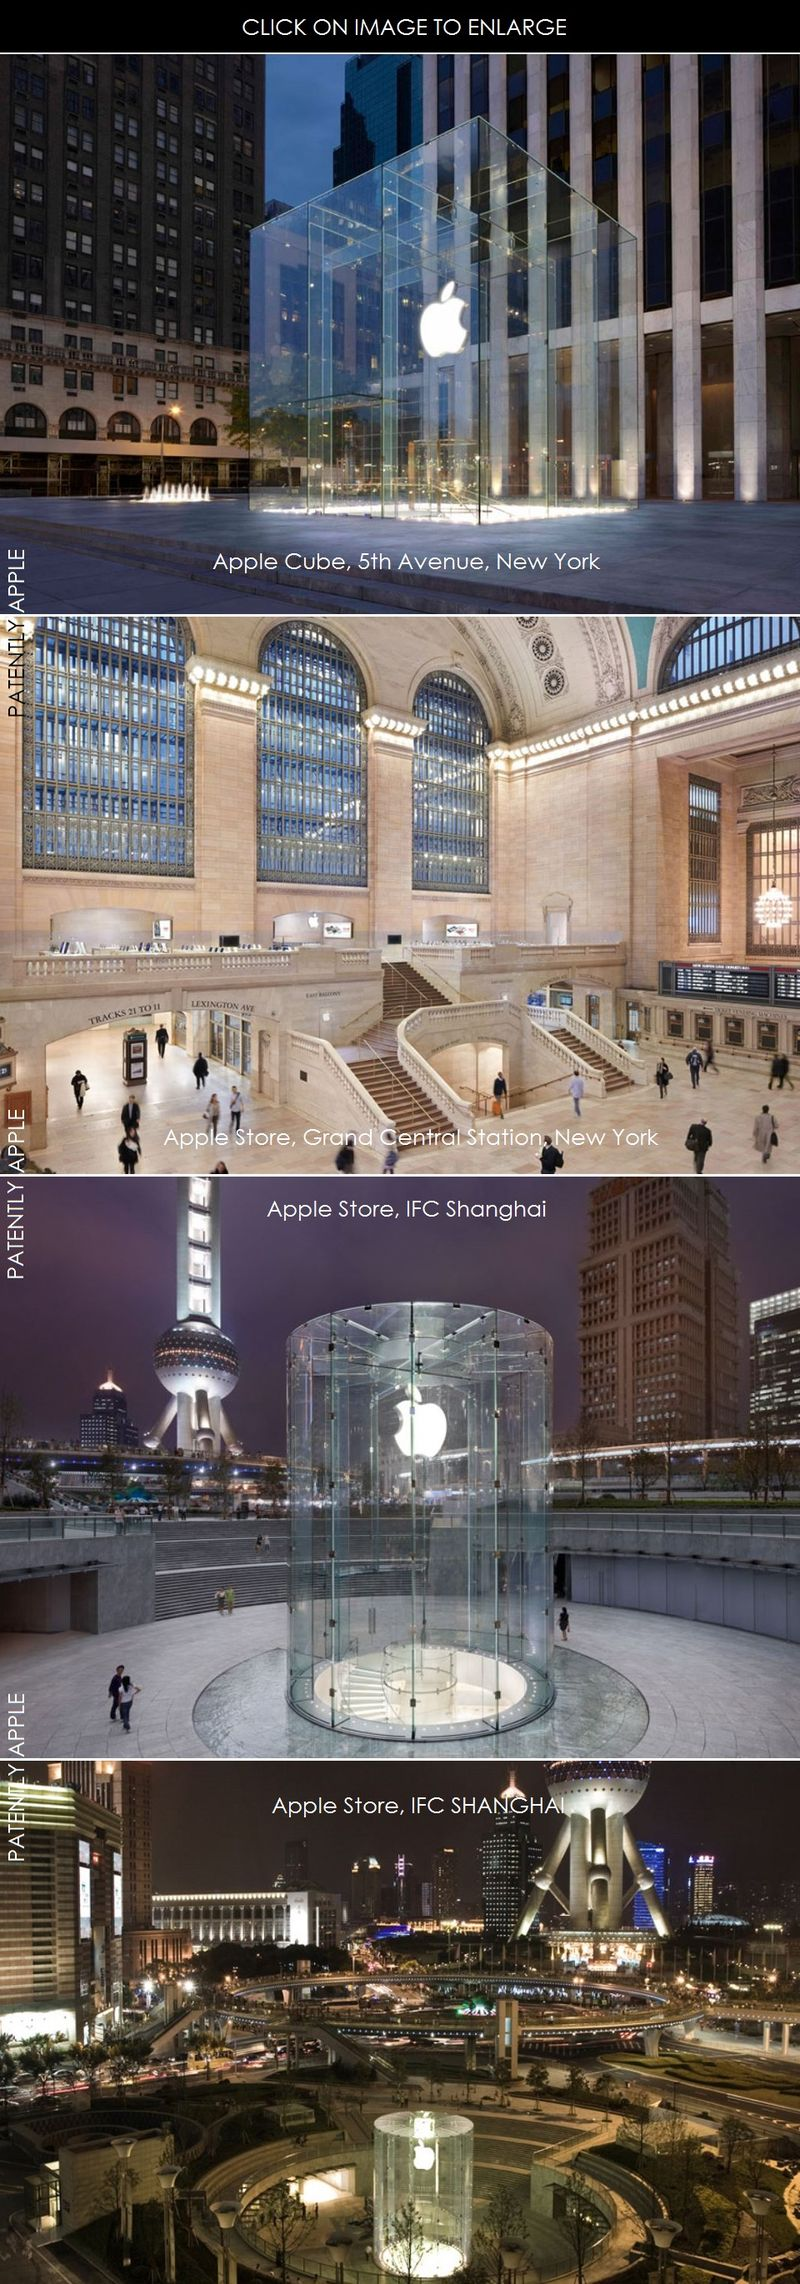 4AF 100 - APPLE STORE COLLECTION ECKERSLEY OCALLAGHAN